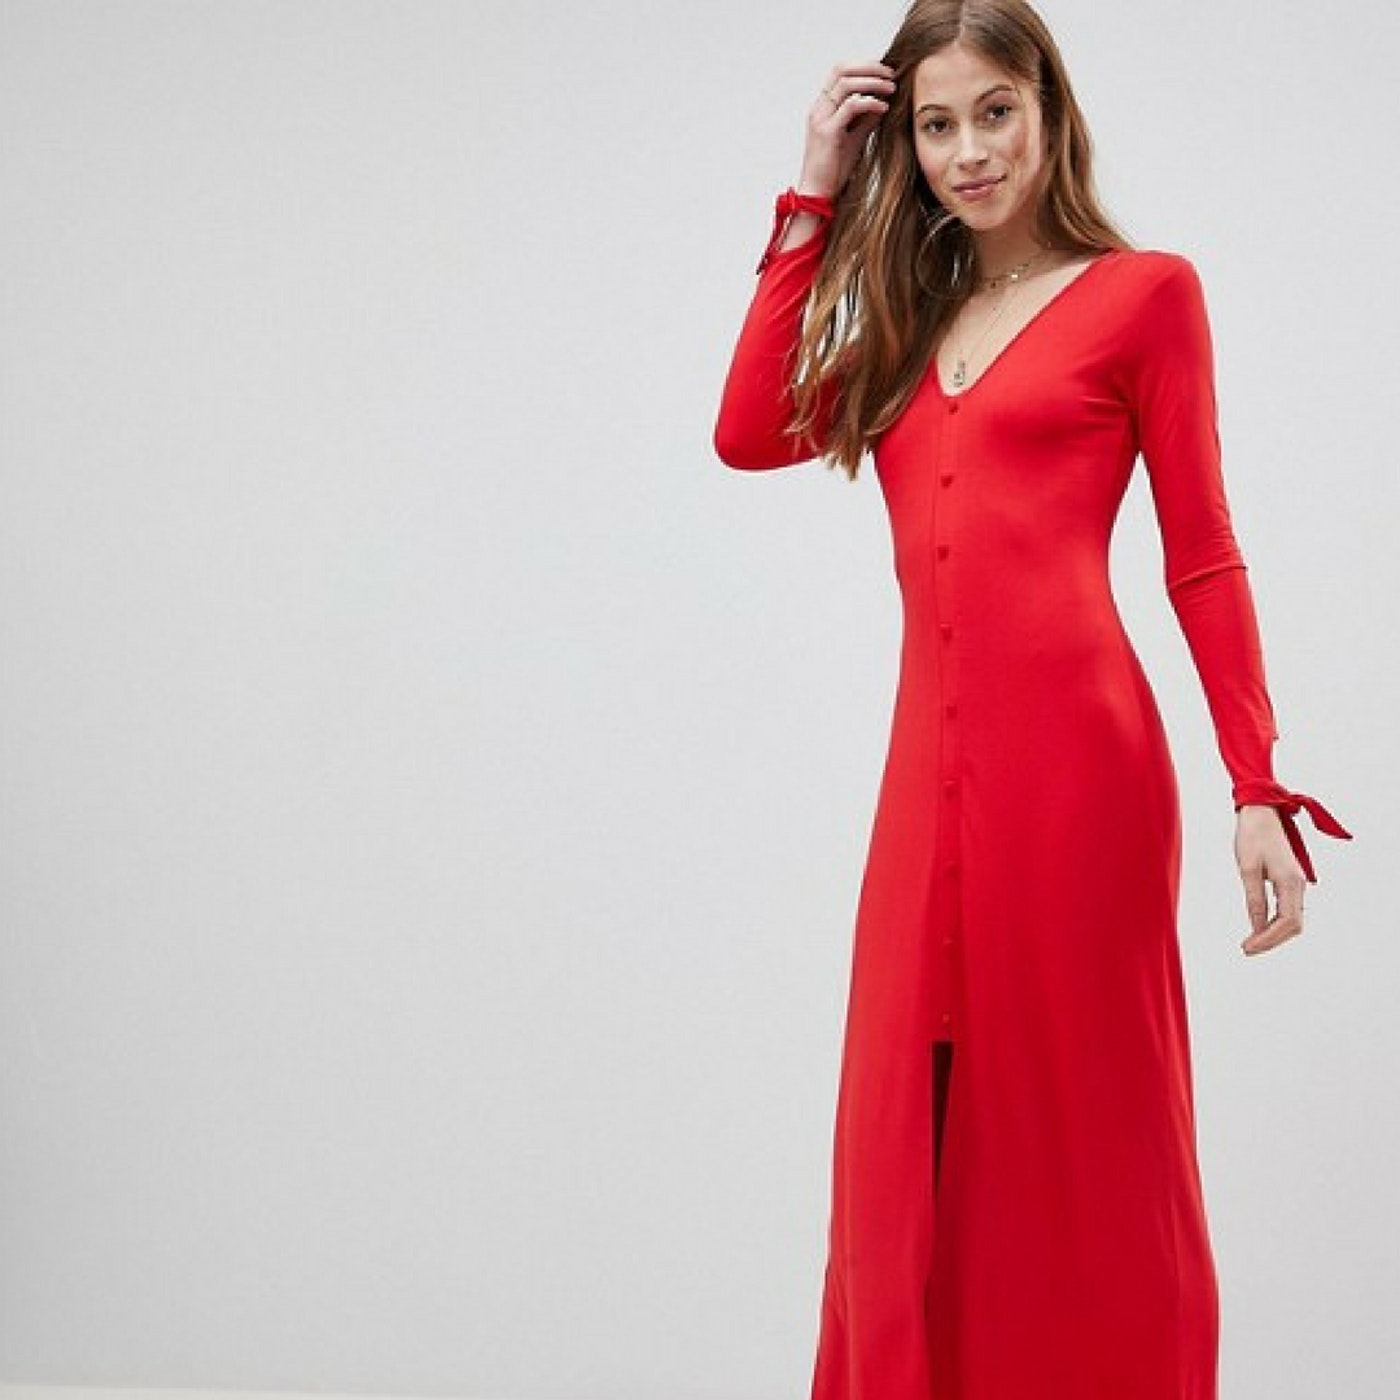 43139026fb9 Asos Maxi Dress With Long Sleeves - Data Dynamic AG